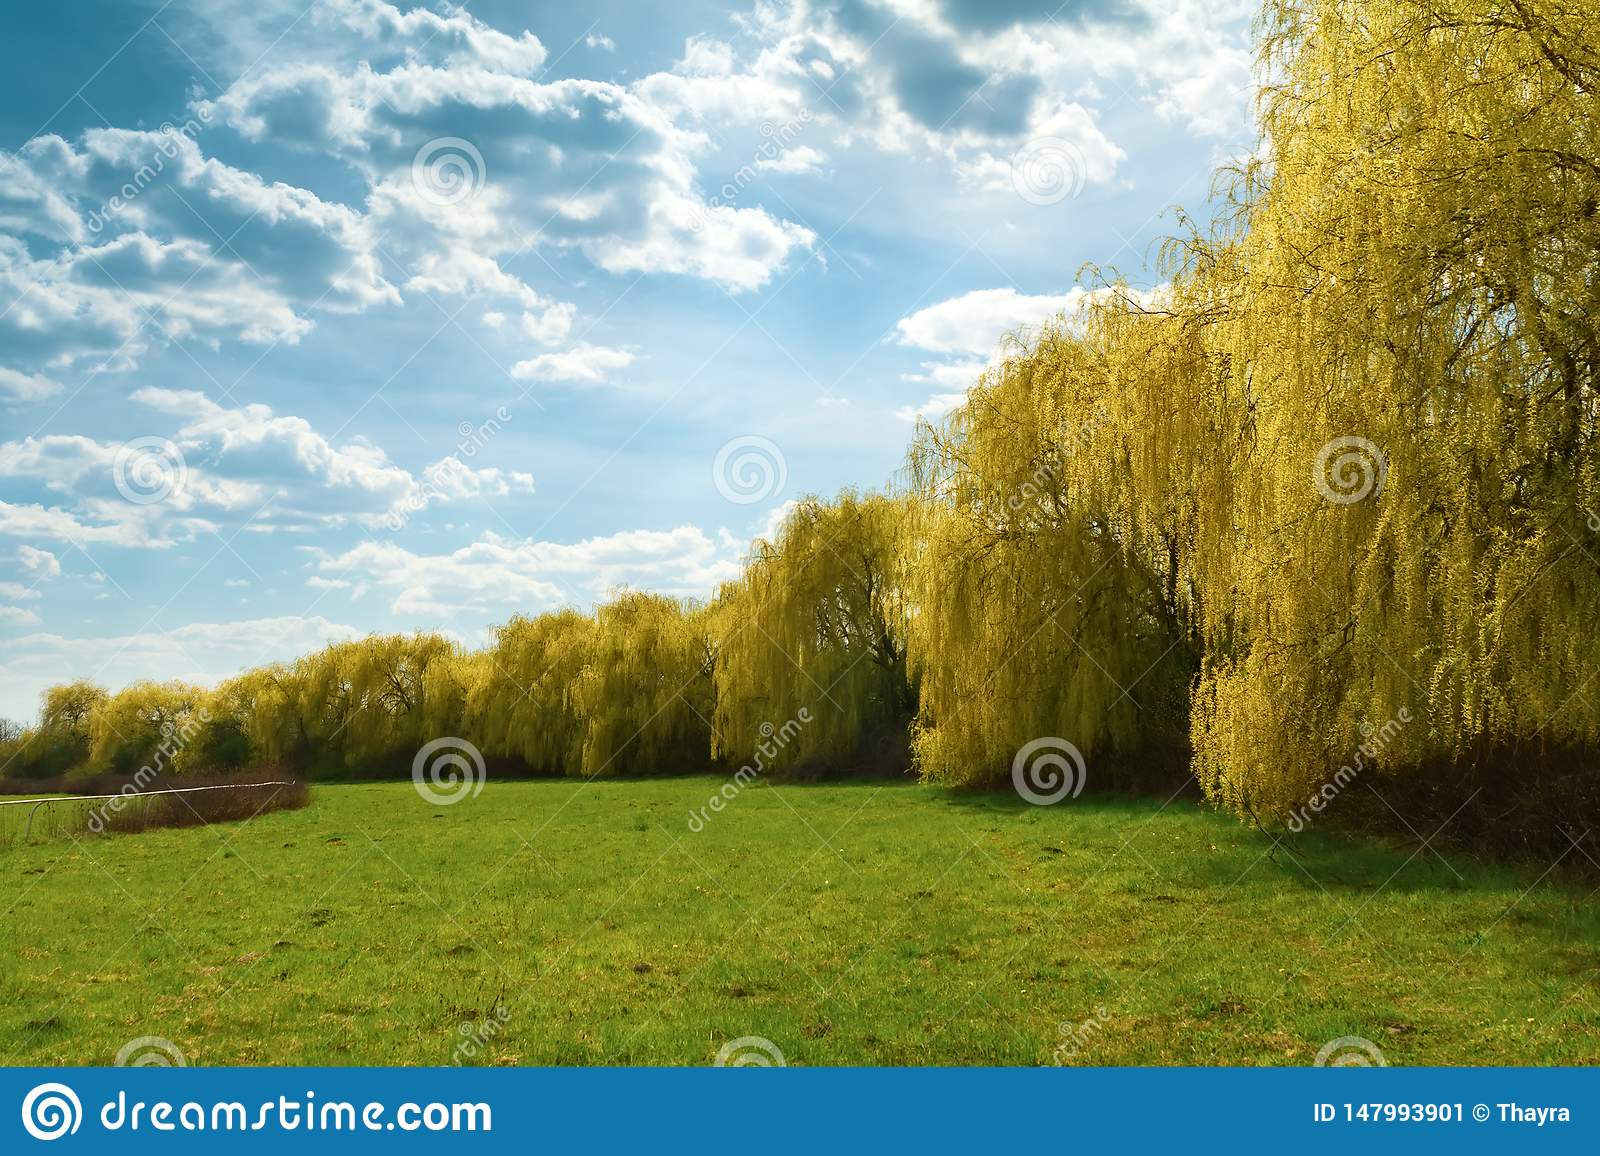 Spring weeping willow trees in park. Spring background. Copy space